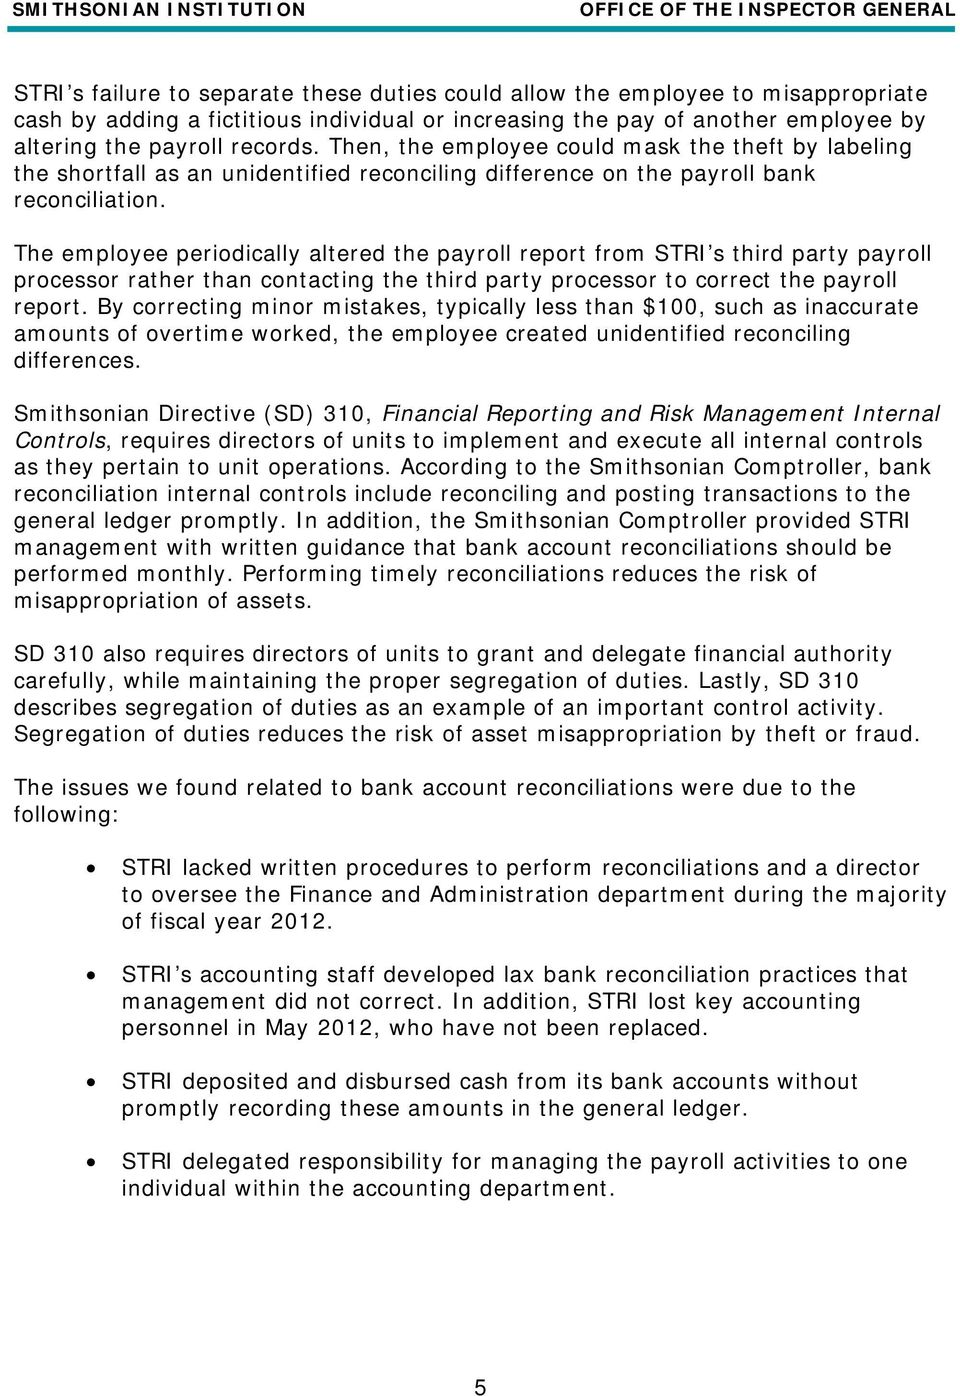 The employee periodically altered the payroll report from STRI s third party payroll processor rather than contacting the third party processor to correct the payroll report.